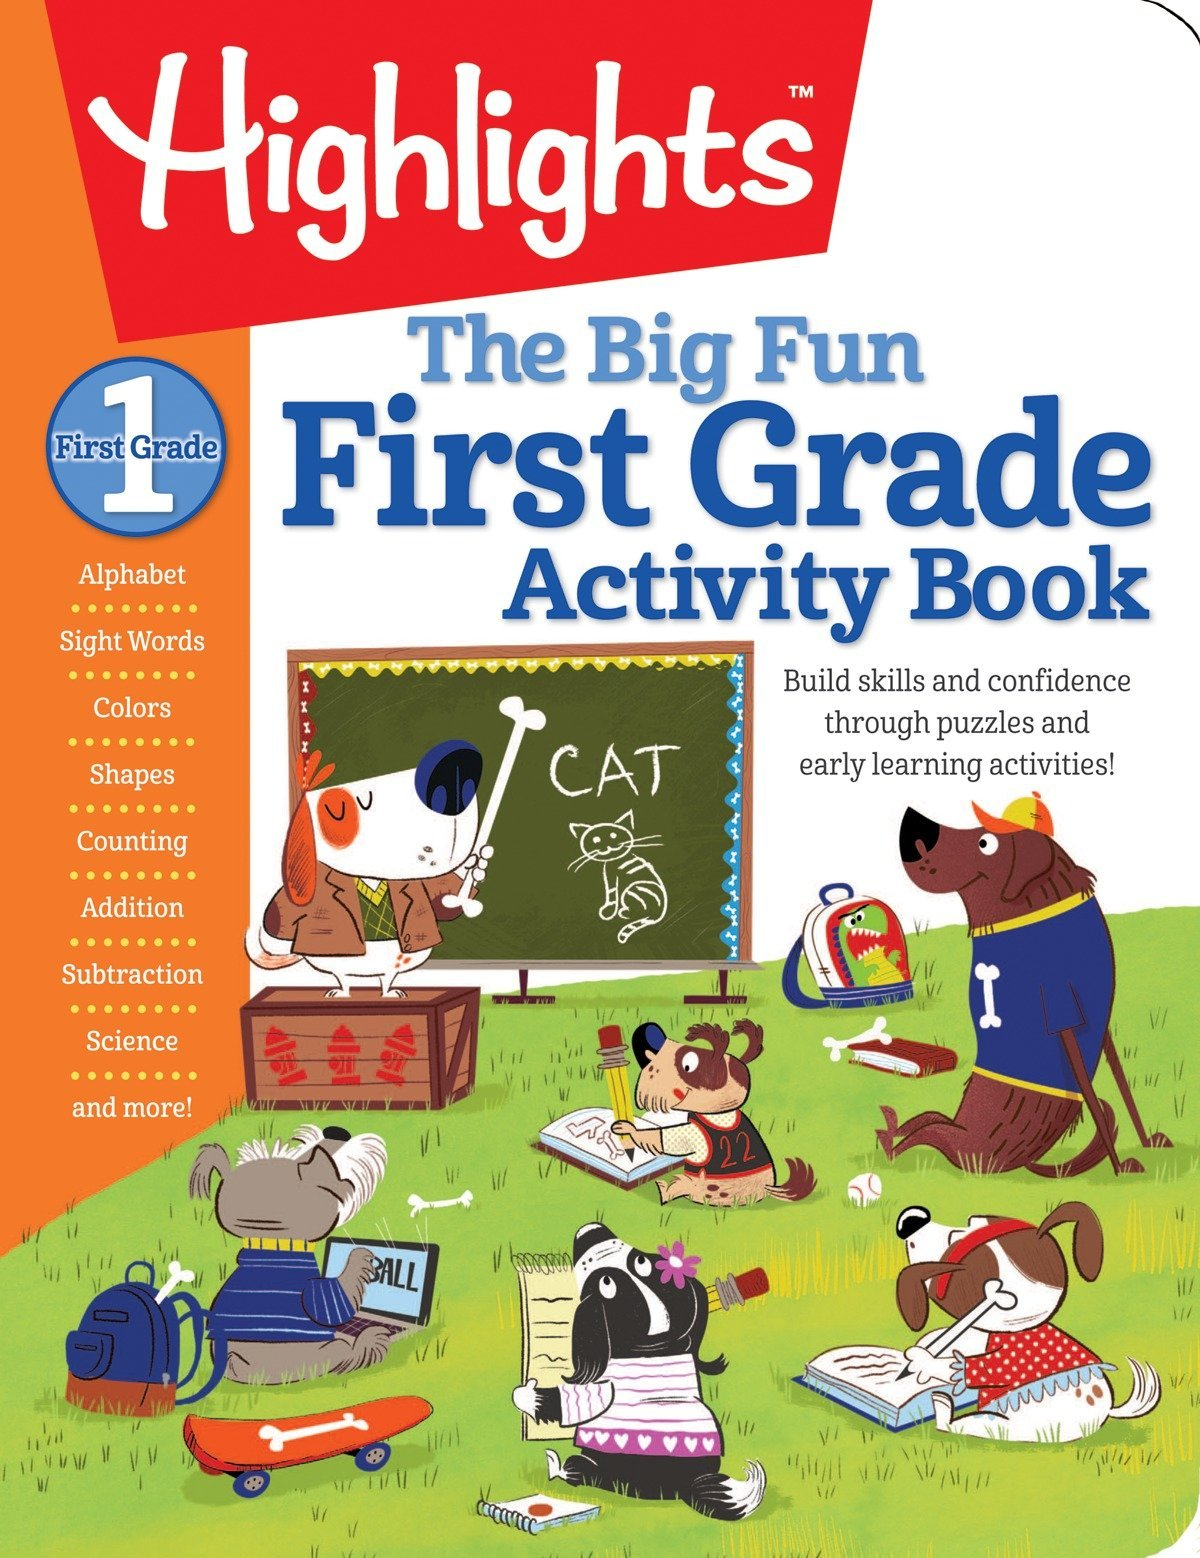 The Big Fun First Grade Activity Book: Build skills and confidence through puzzles and early learning activities! (Highlights Big Fun Activity Workbooks)